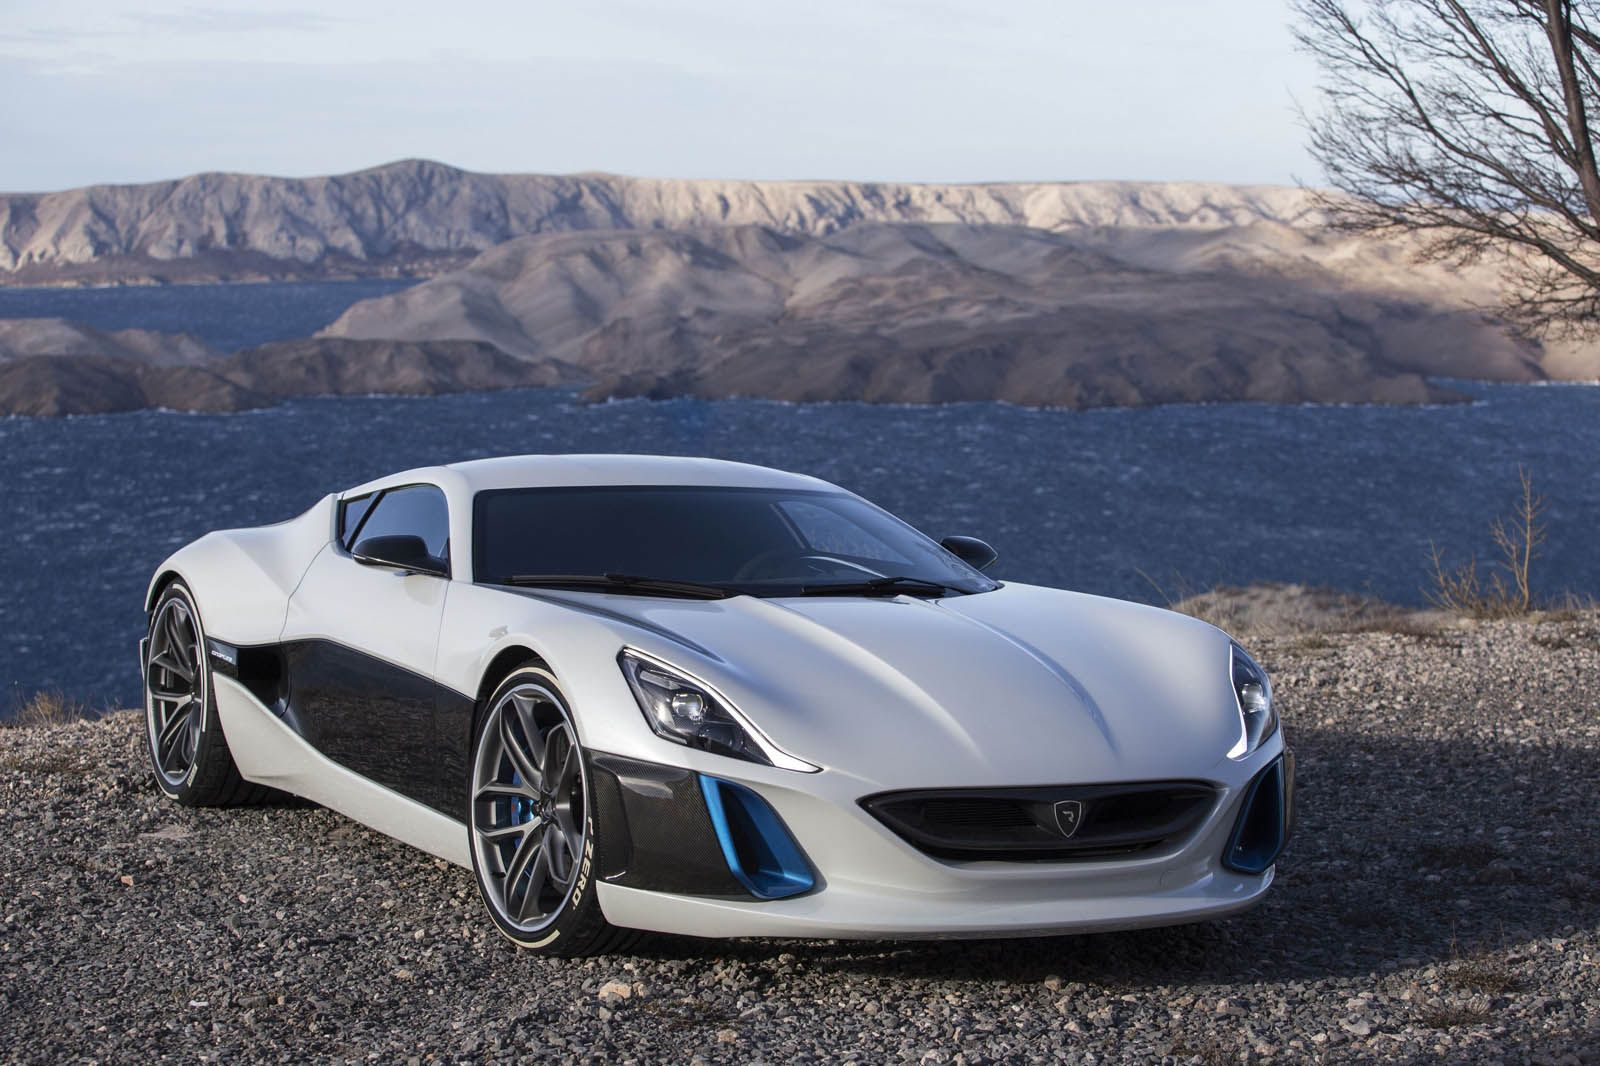 Rimac Upgrades Concept One Electric Supercar To Take On The World Luxury Hybrid Cars Hybrid Car Super Cars